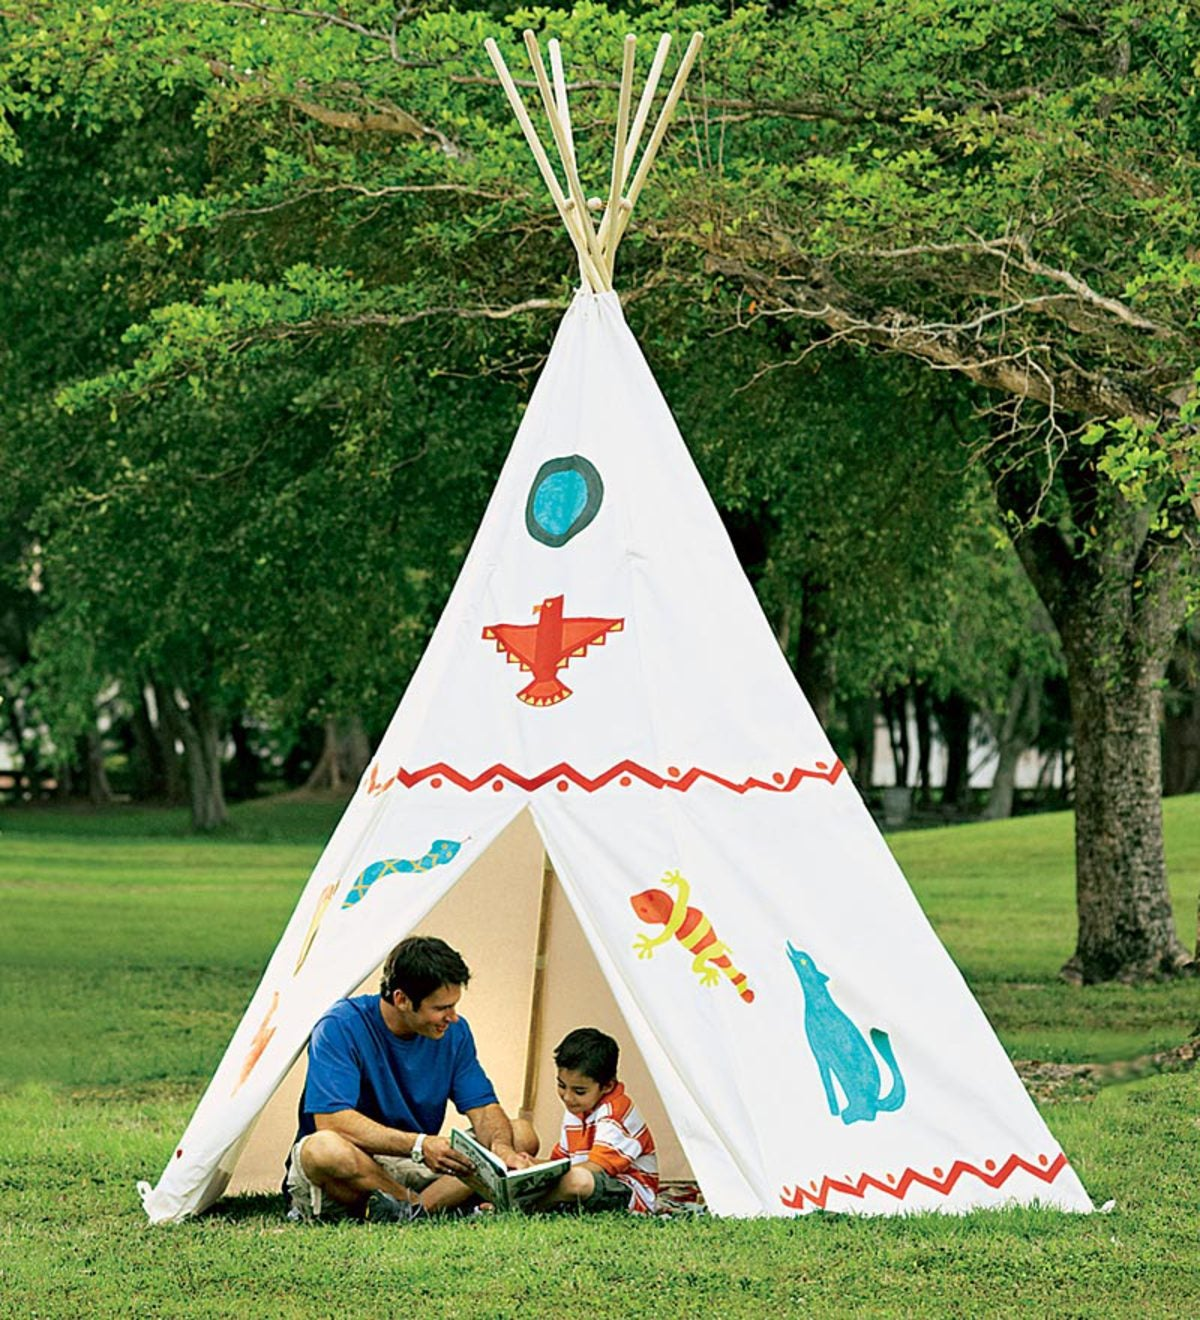 12' Family-Sized Cotton Canvas Teepee with Wooden Poles